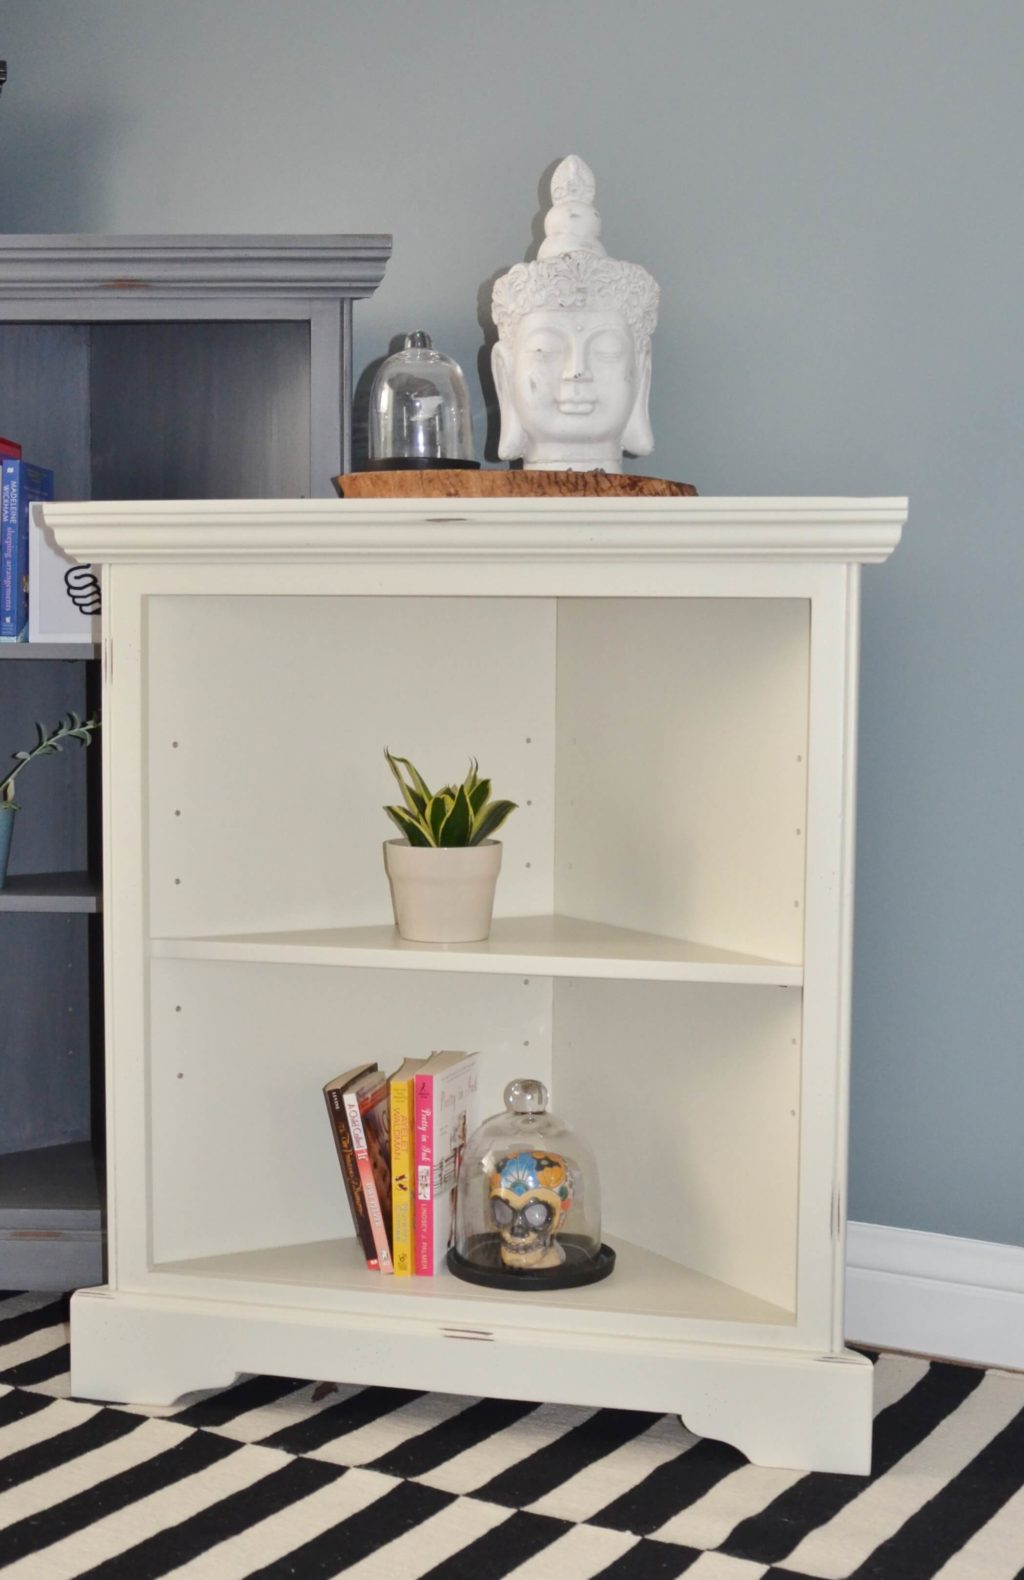 Barcelona Corner Bookshelf Single Shelf